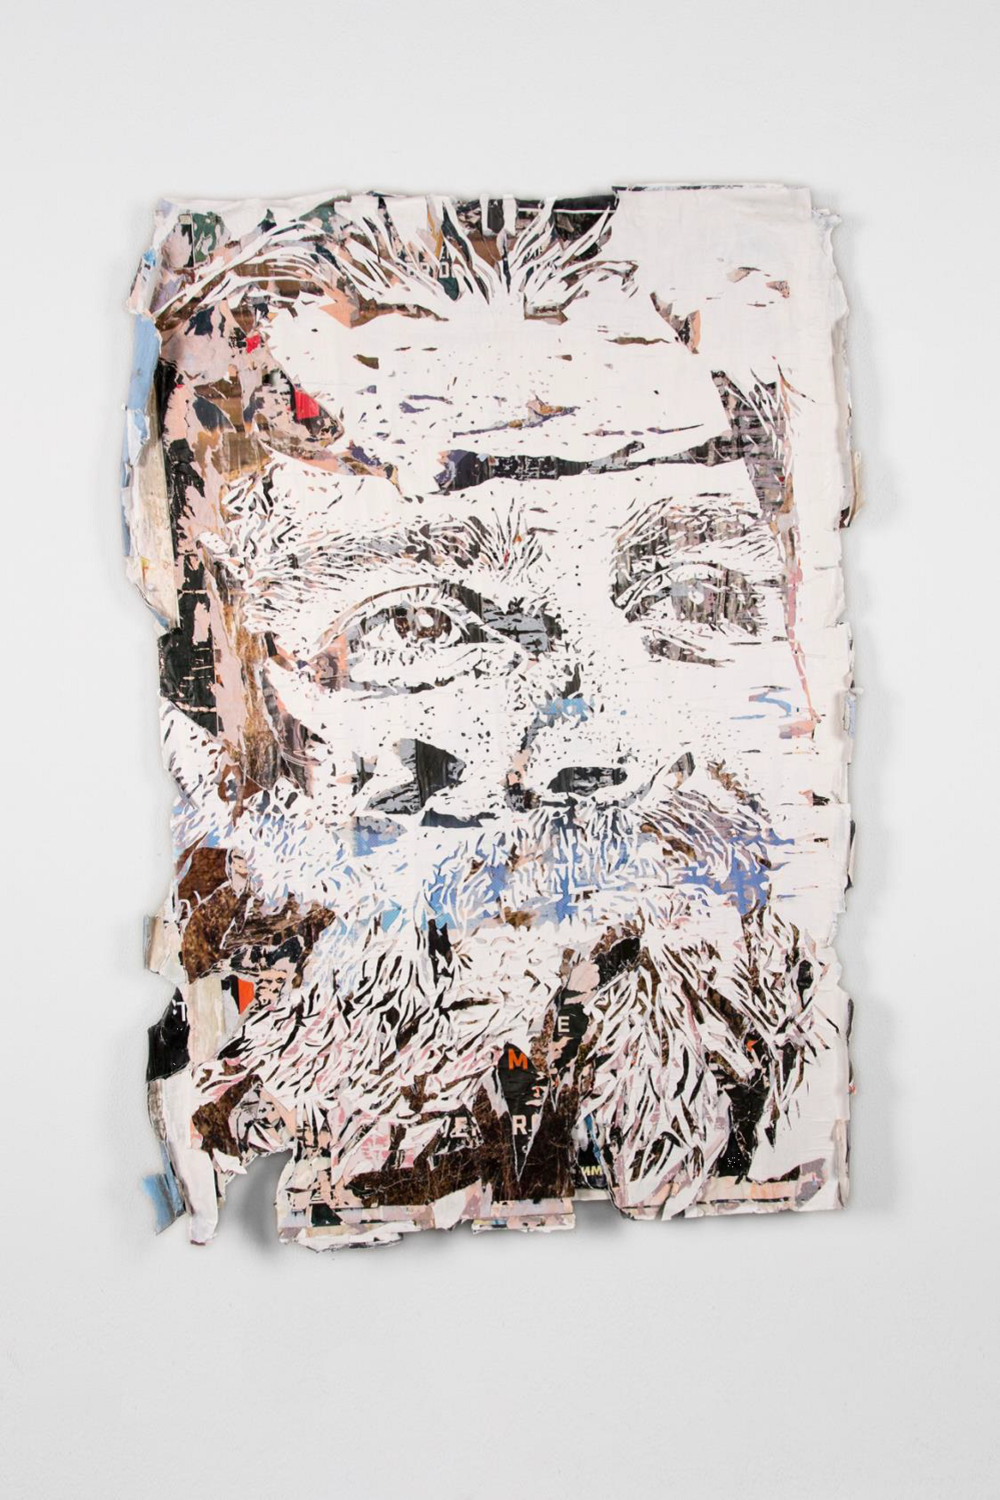 VHILS  Attrition #3, 2018   Advertising posters collected from the street, hand carved  73 x 51 in.